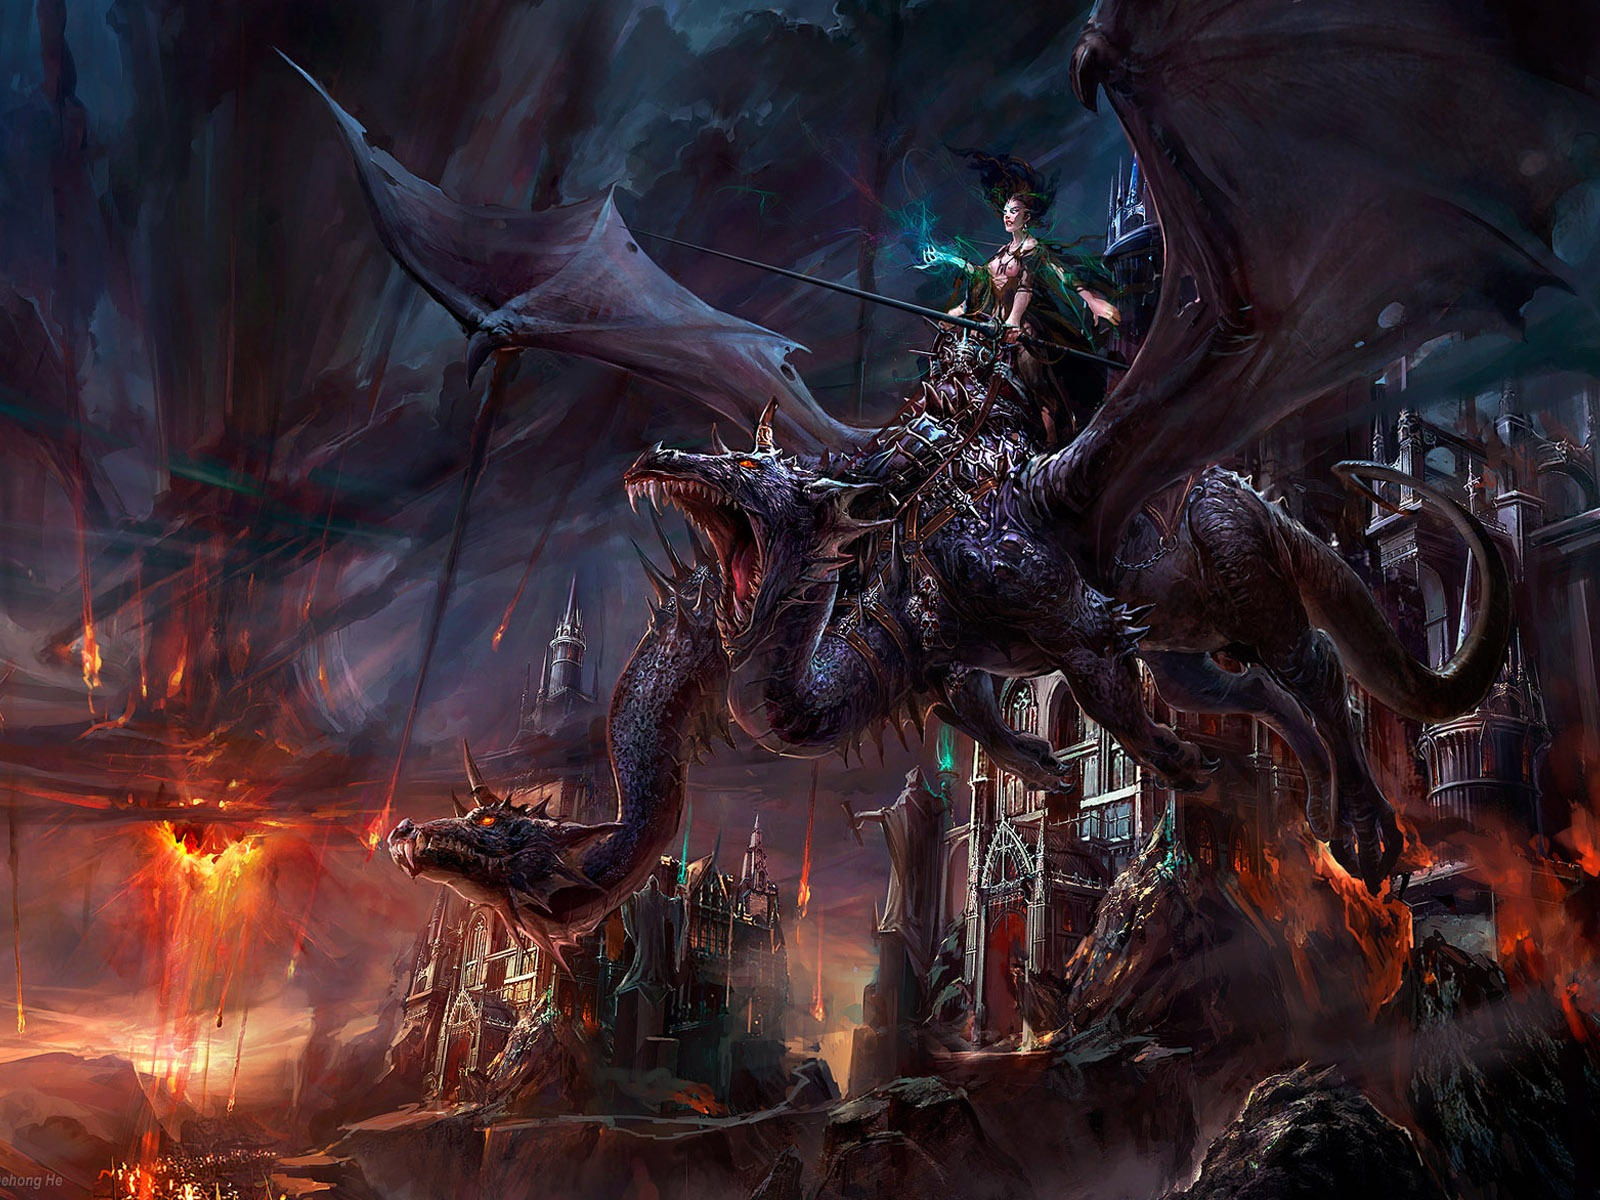 Dark Fantasy Dragon Wallpaper Full 1080p Ultra HD Wallpapers 1600x1200